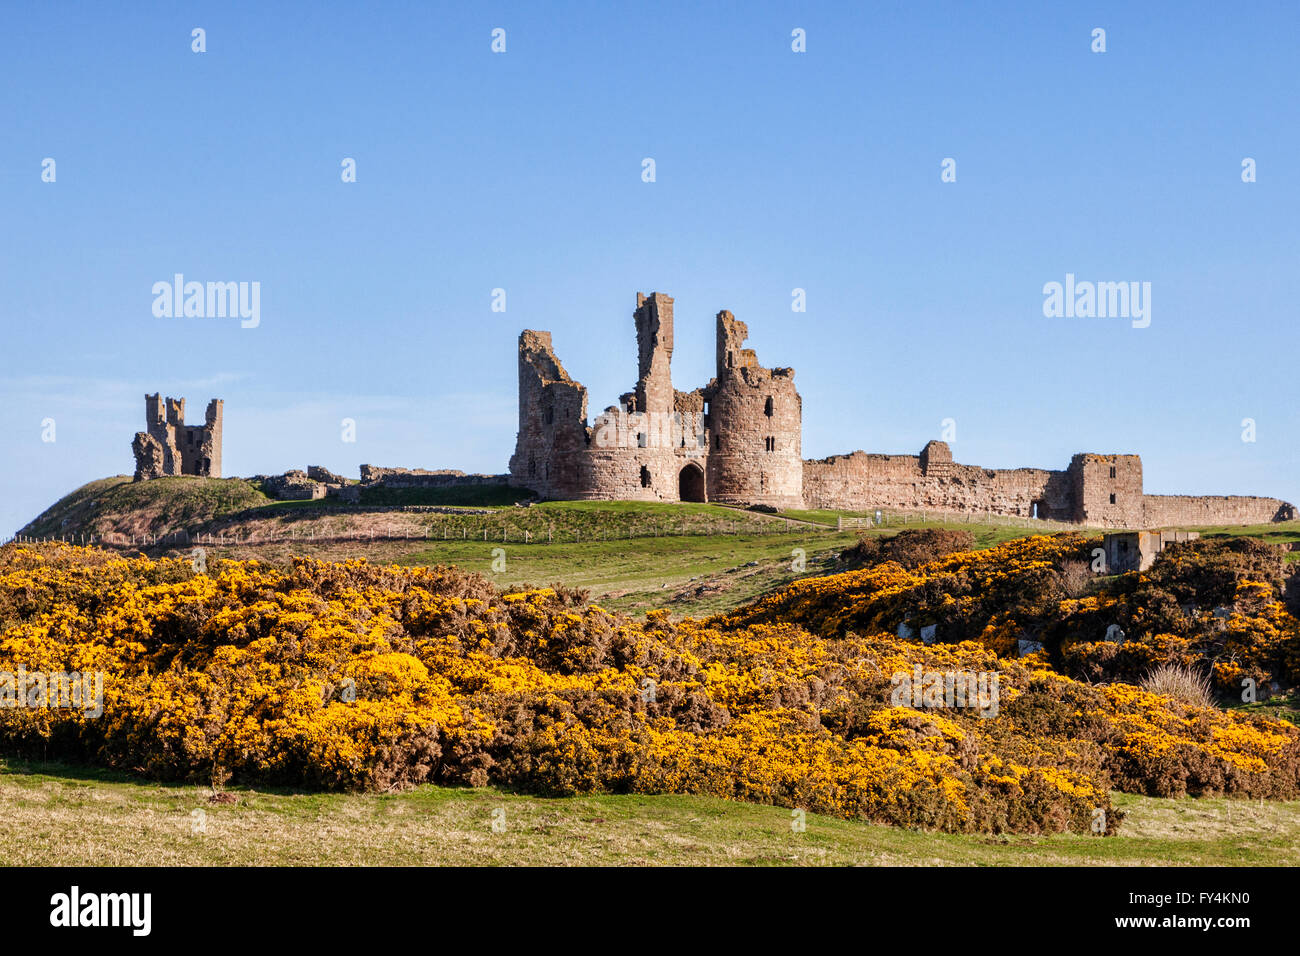 Dunstanburgh Castle in Spring, with yellow gorse in flower, Northumberland, England, UK - Stock Image